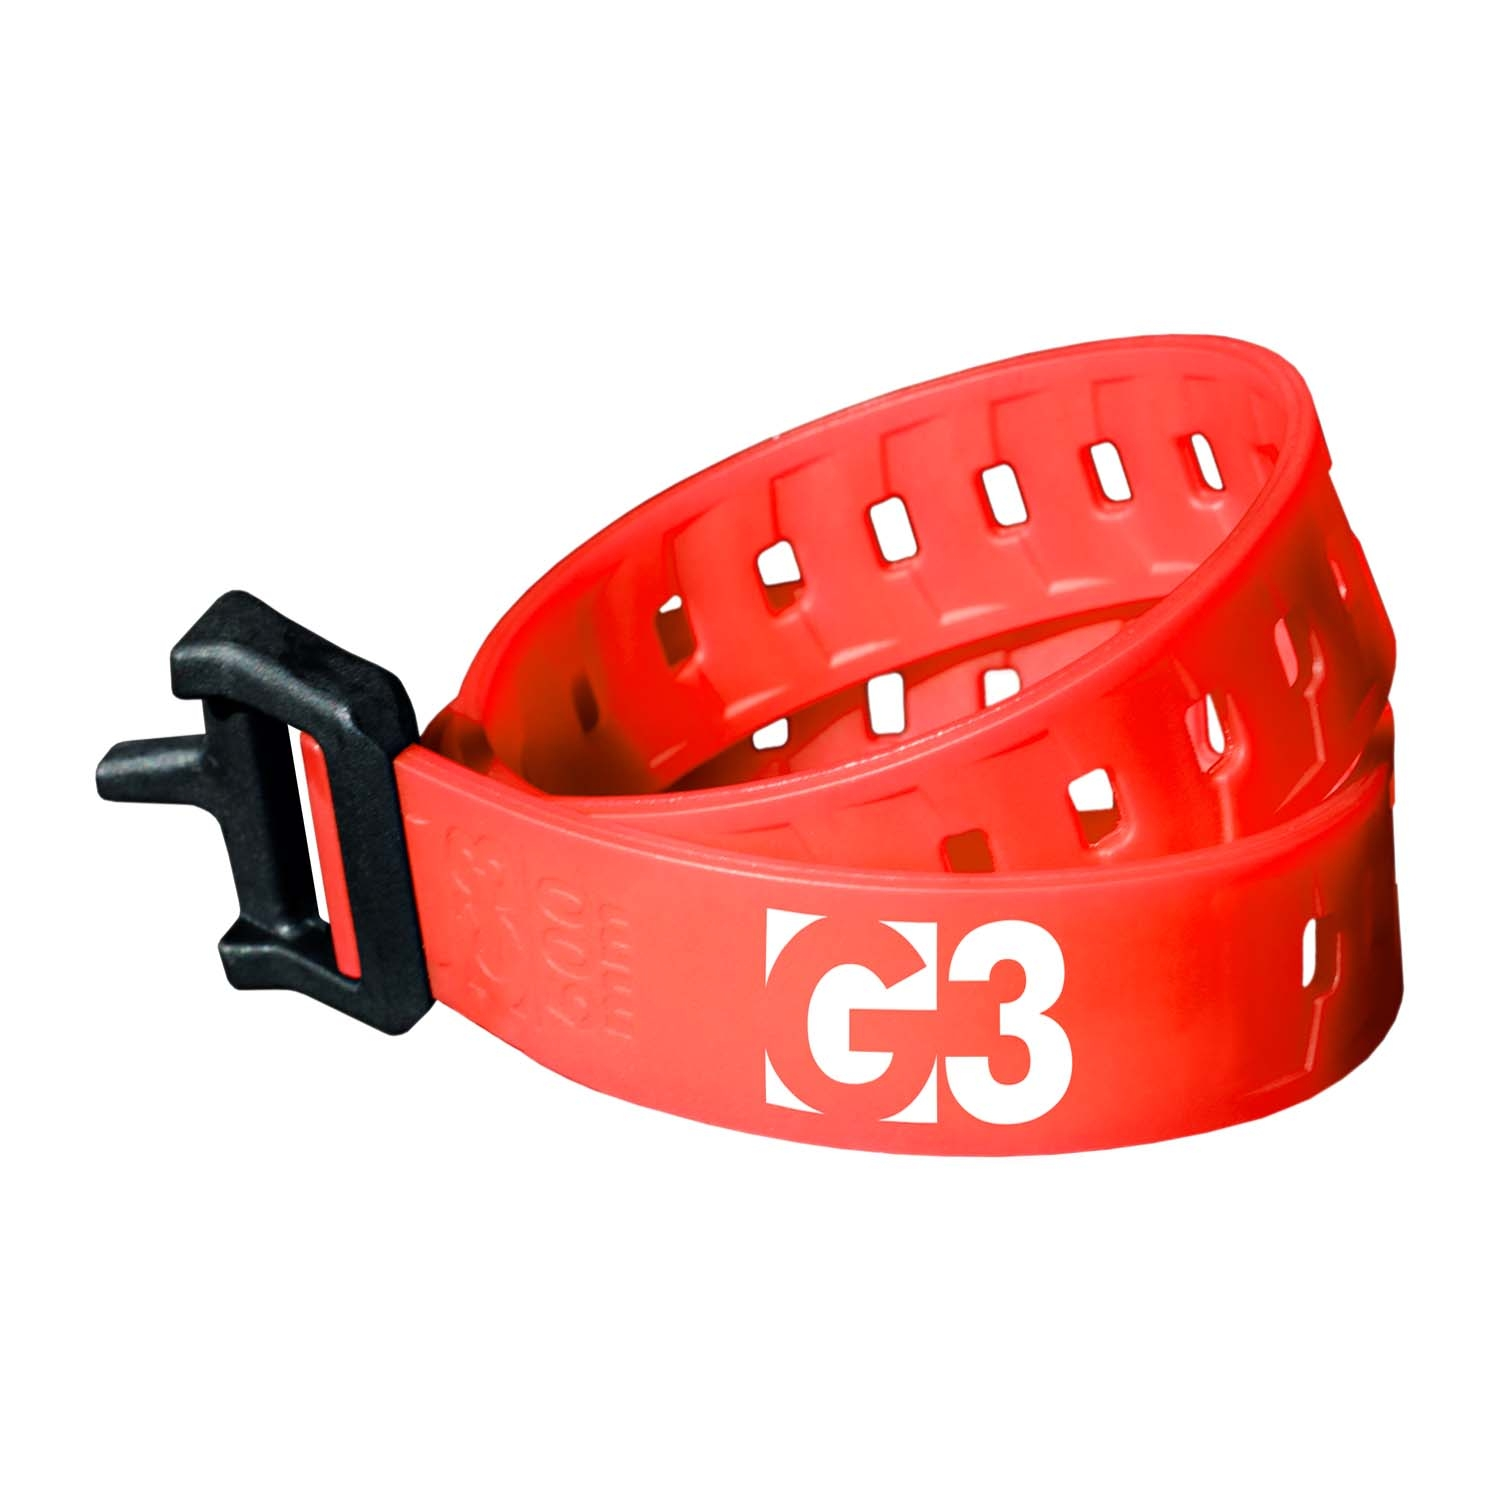 G3 Tension Strap Universal Red 2020